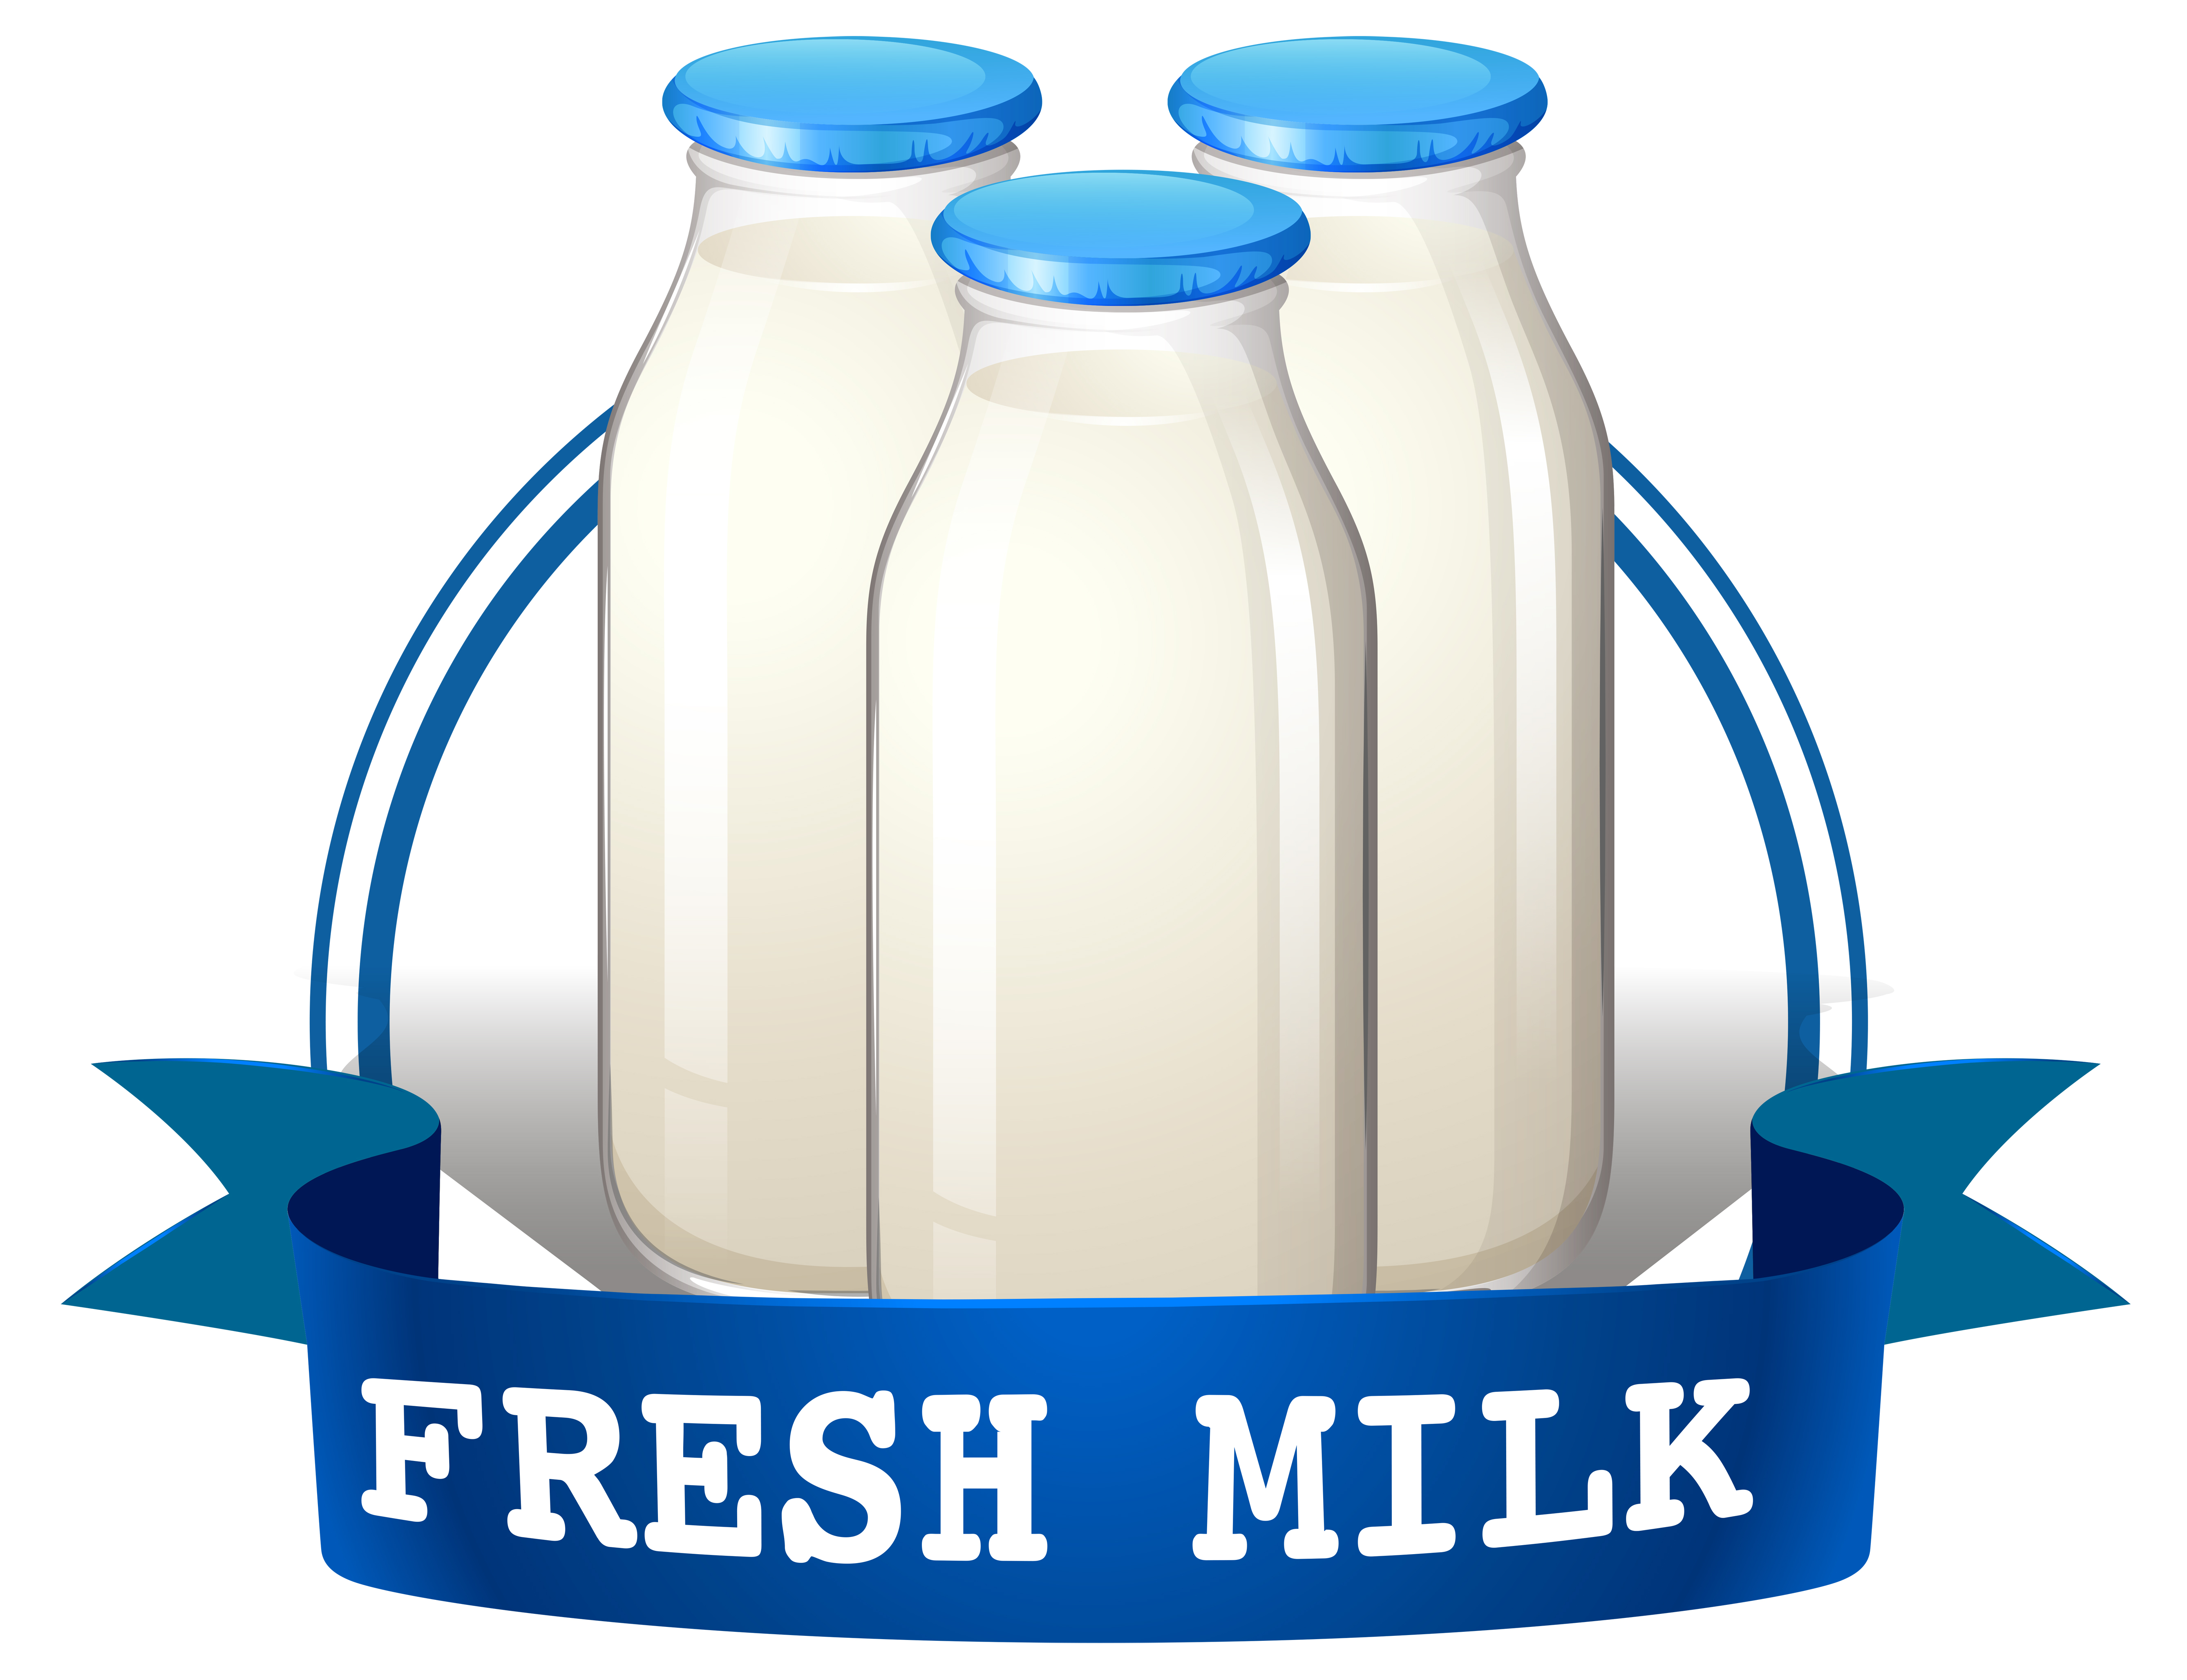 Dairy Products Free Vector Art - (2562 Free Downloads) (5352 x 4111 Pixel)